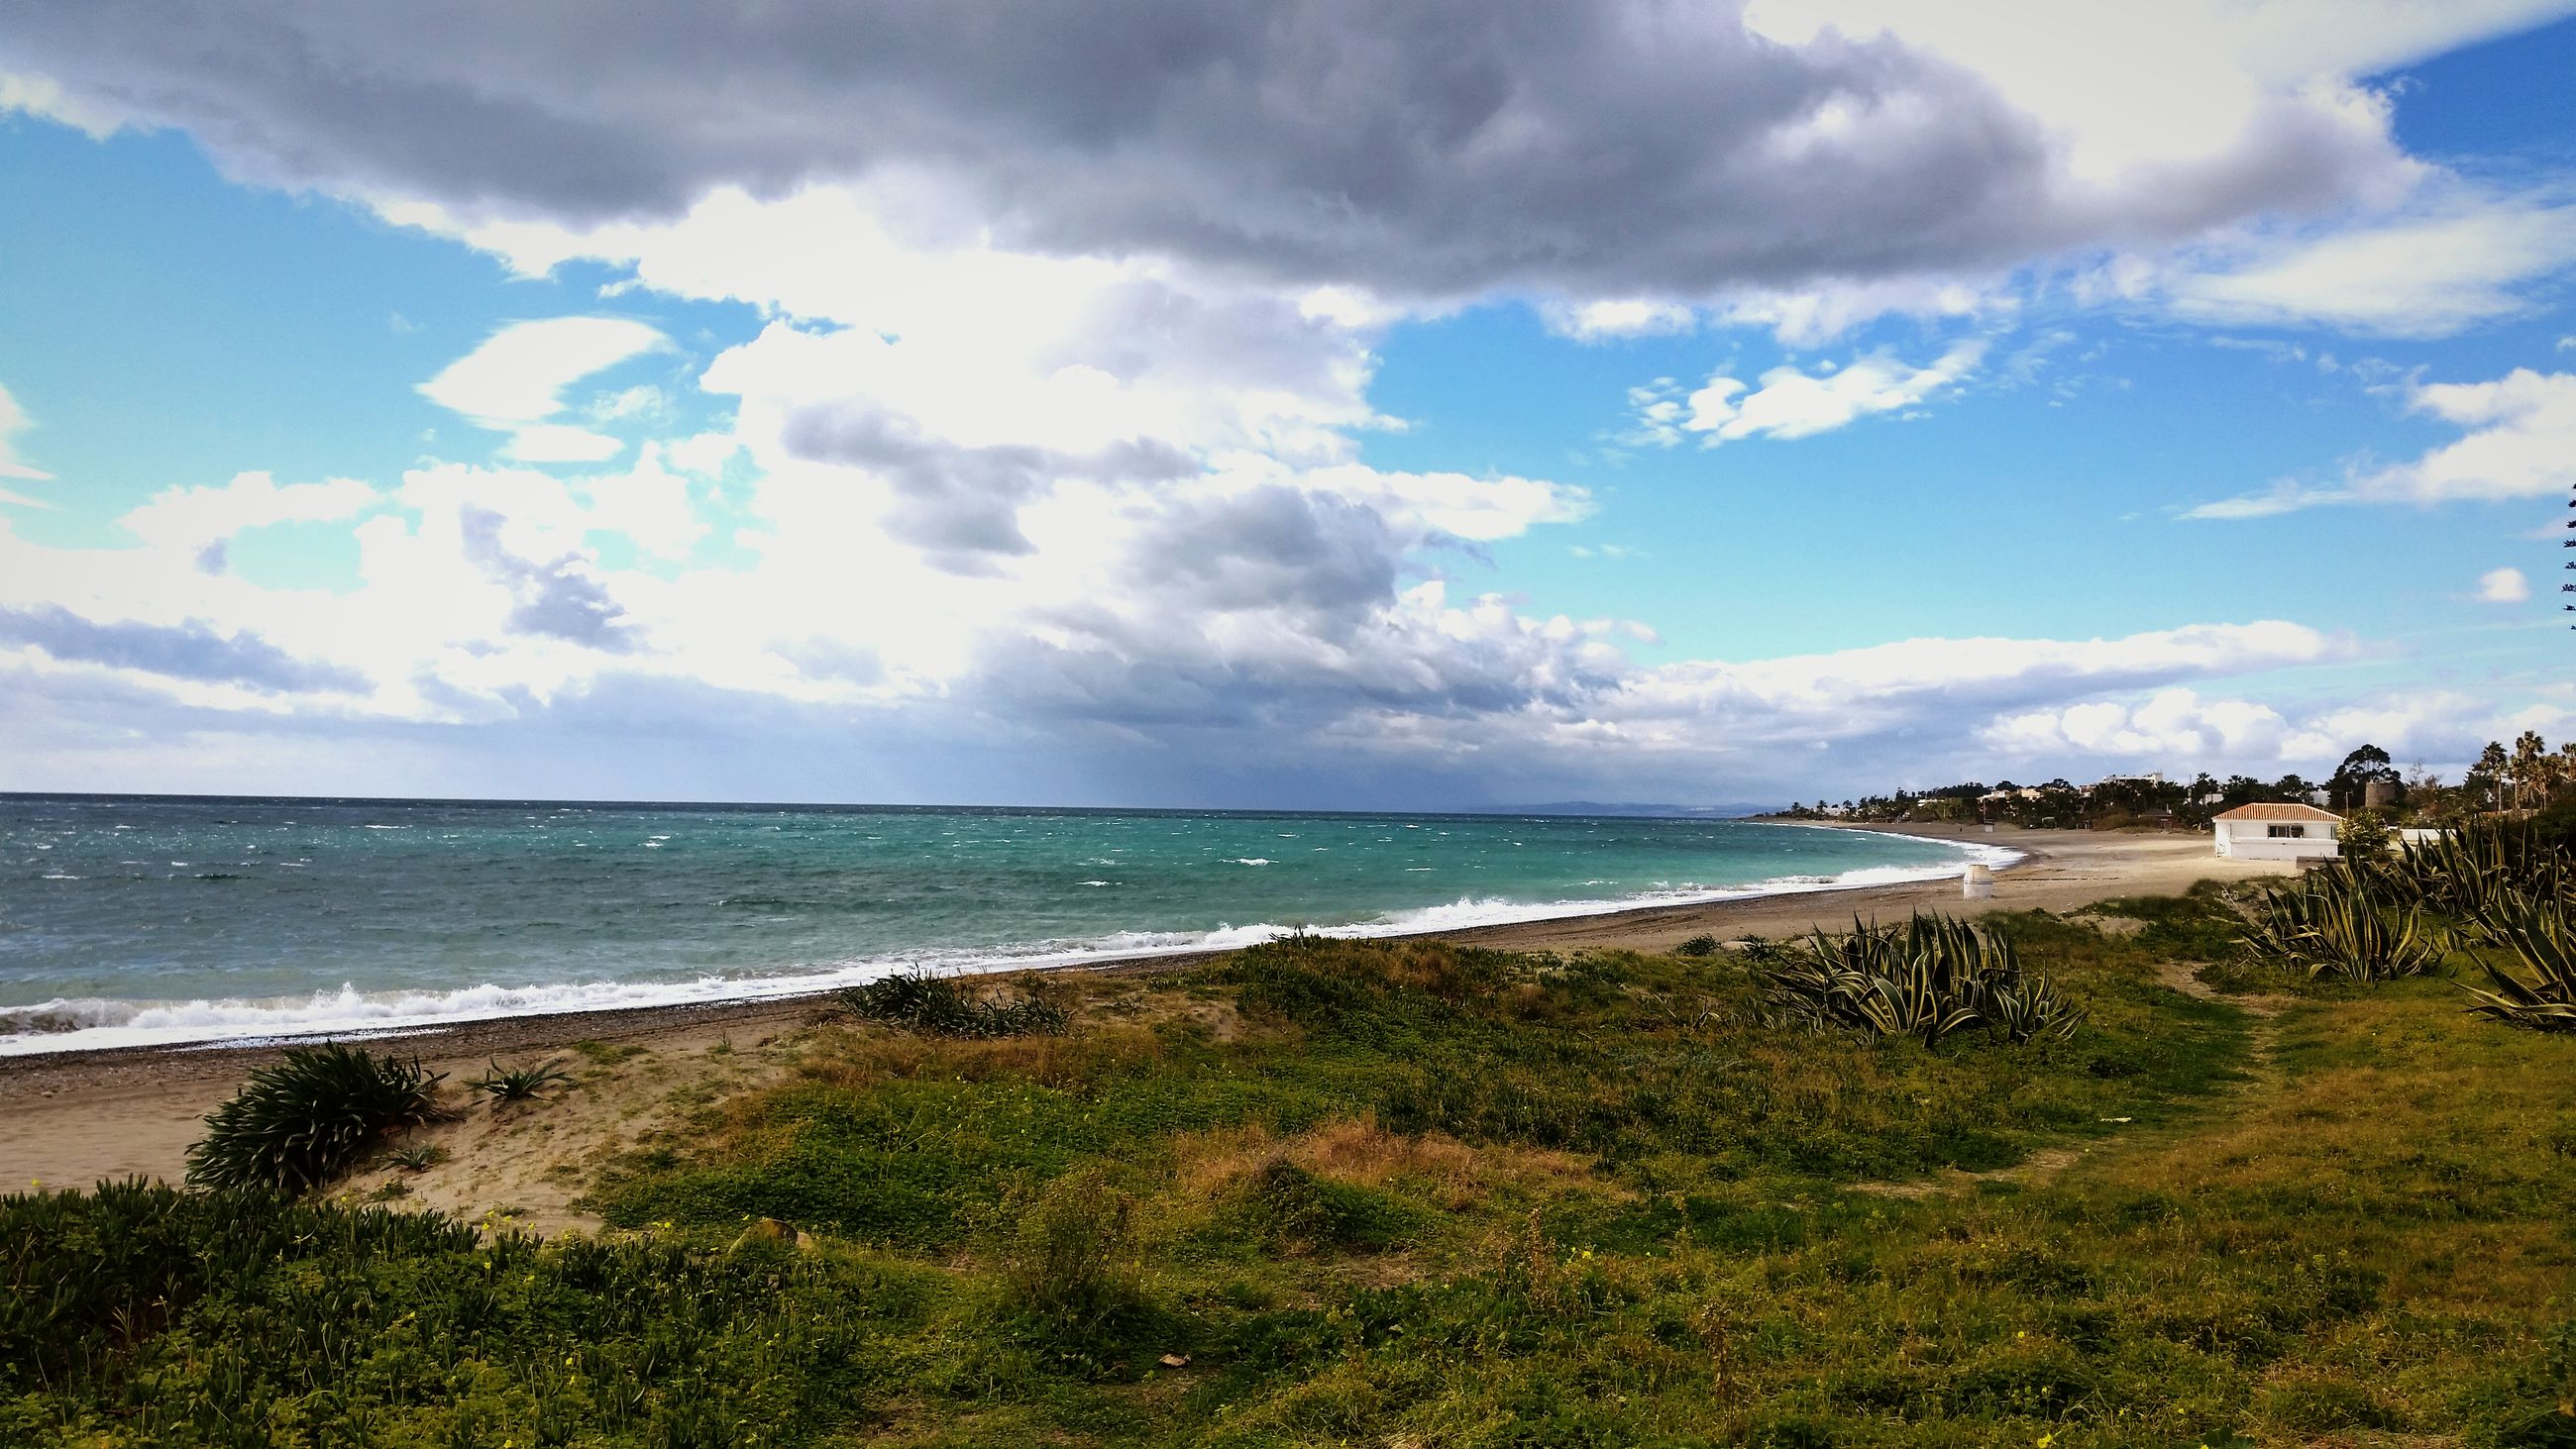 sea, horizon over water, beach, water, sky, shore, tranquil scene, tranquility, scenics, beauty in nature, sand, cloud - sky, nature, grass, coastline, idyllic, cloud, blue, cloudy, day